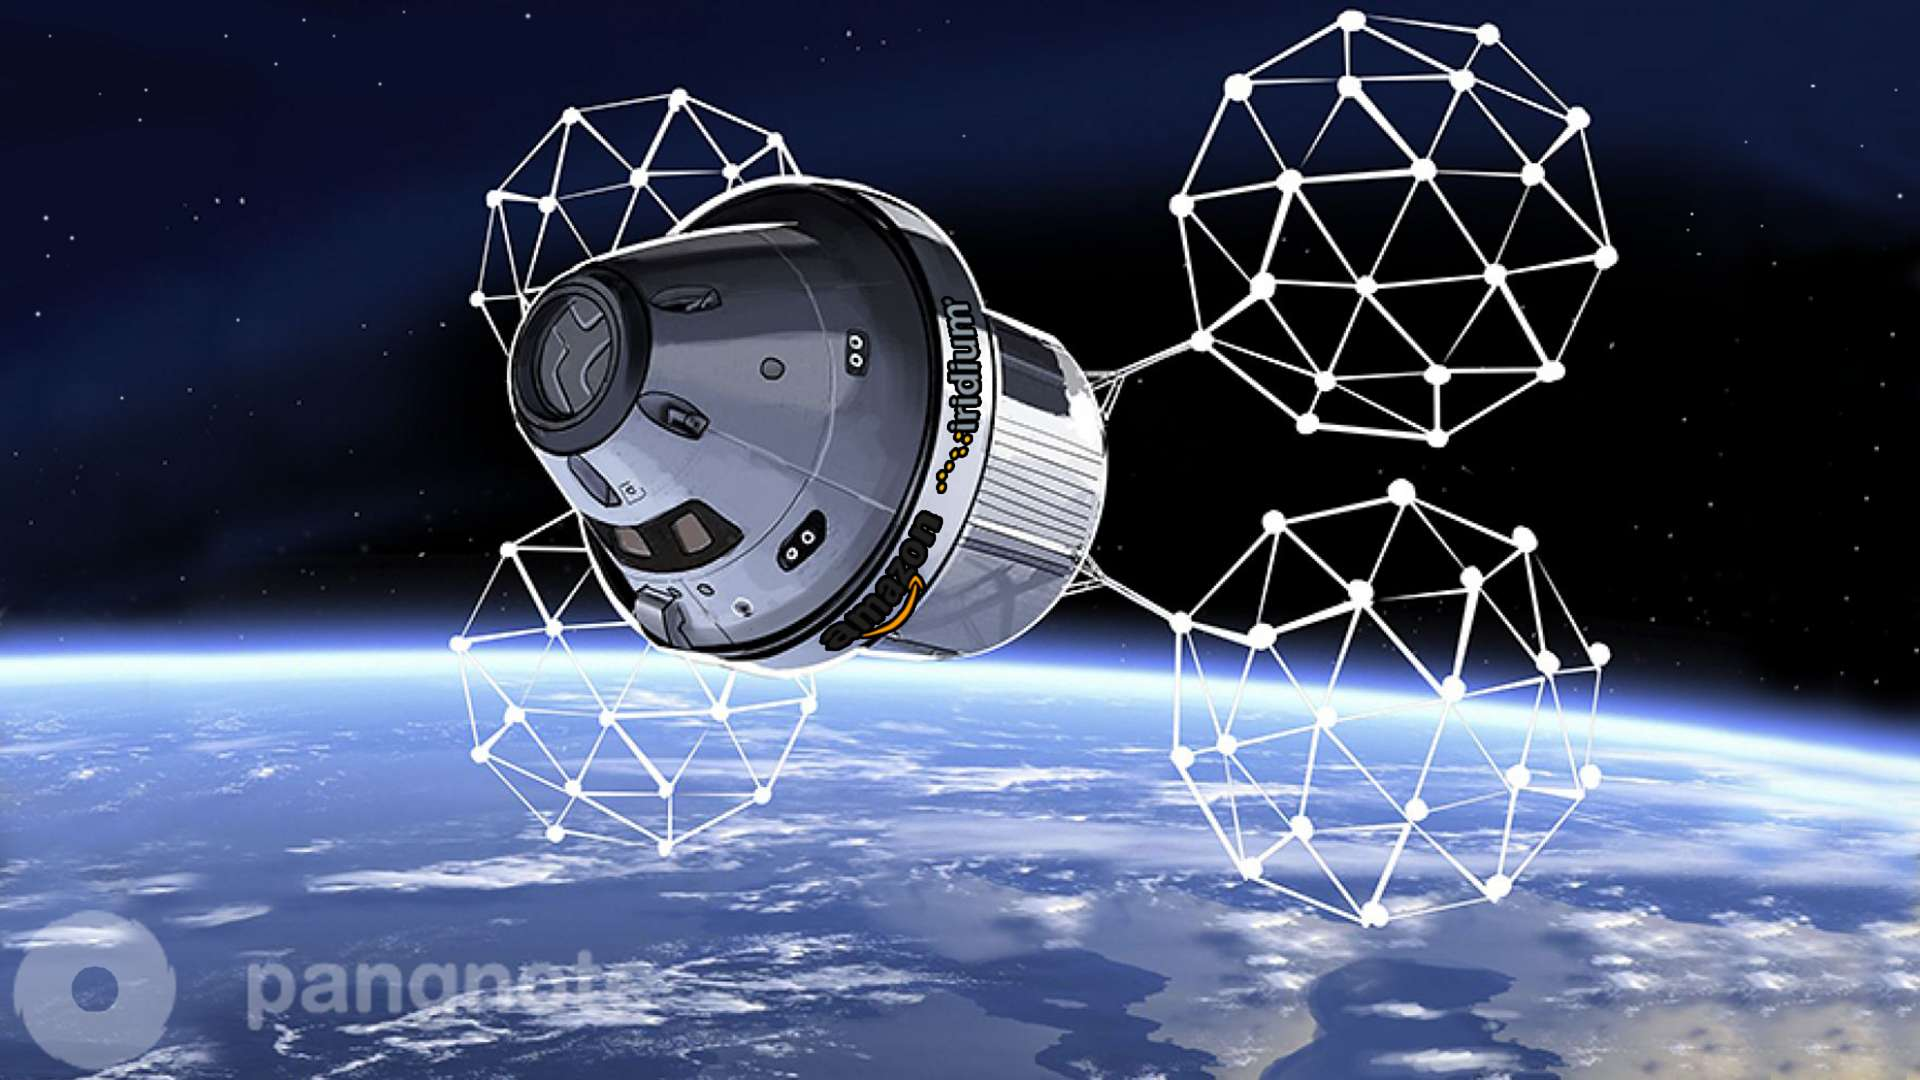 Iridium and Amazon are planning to create global satellite internet for IoT